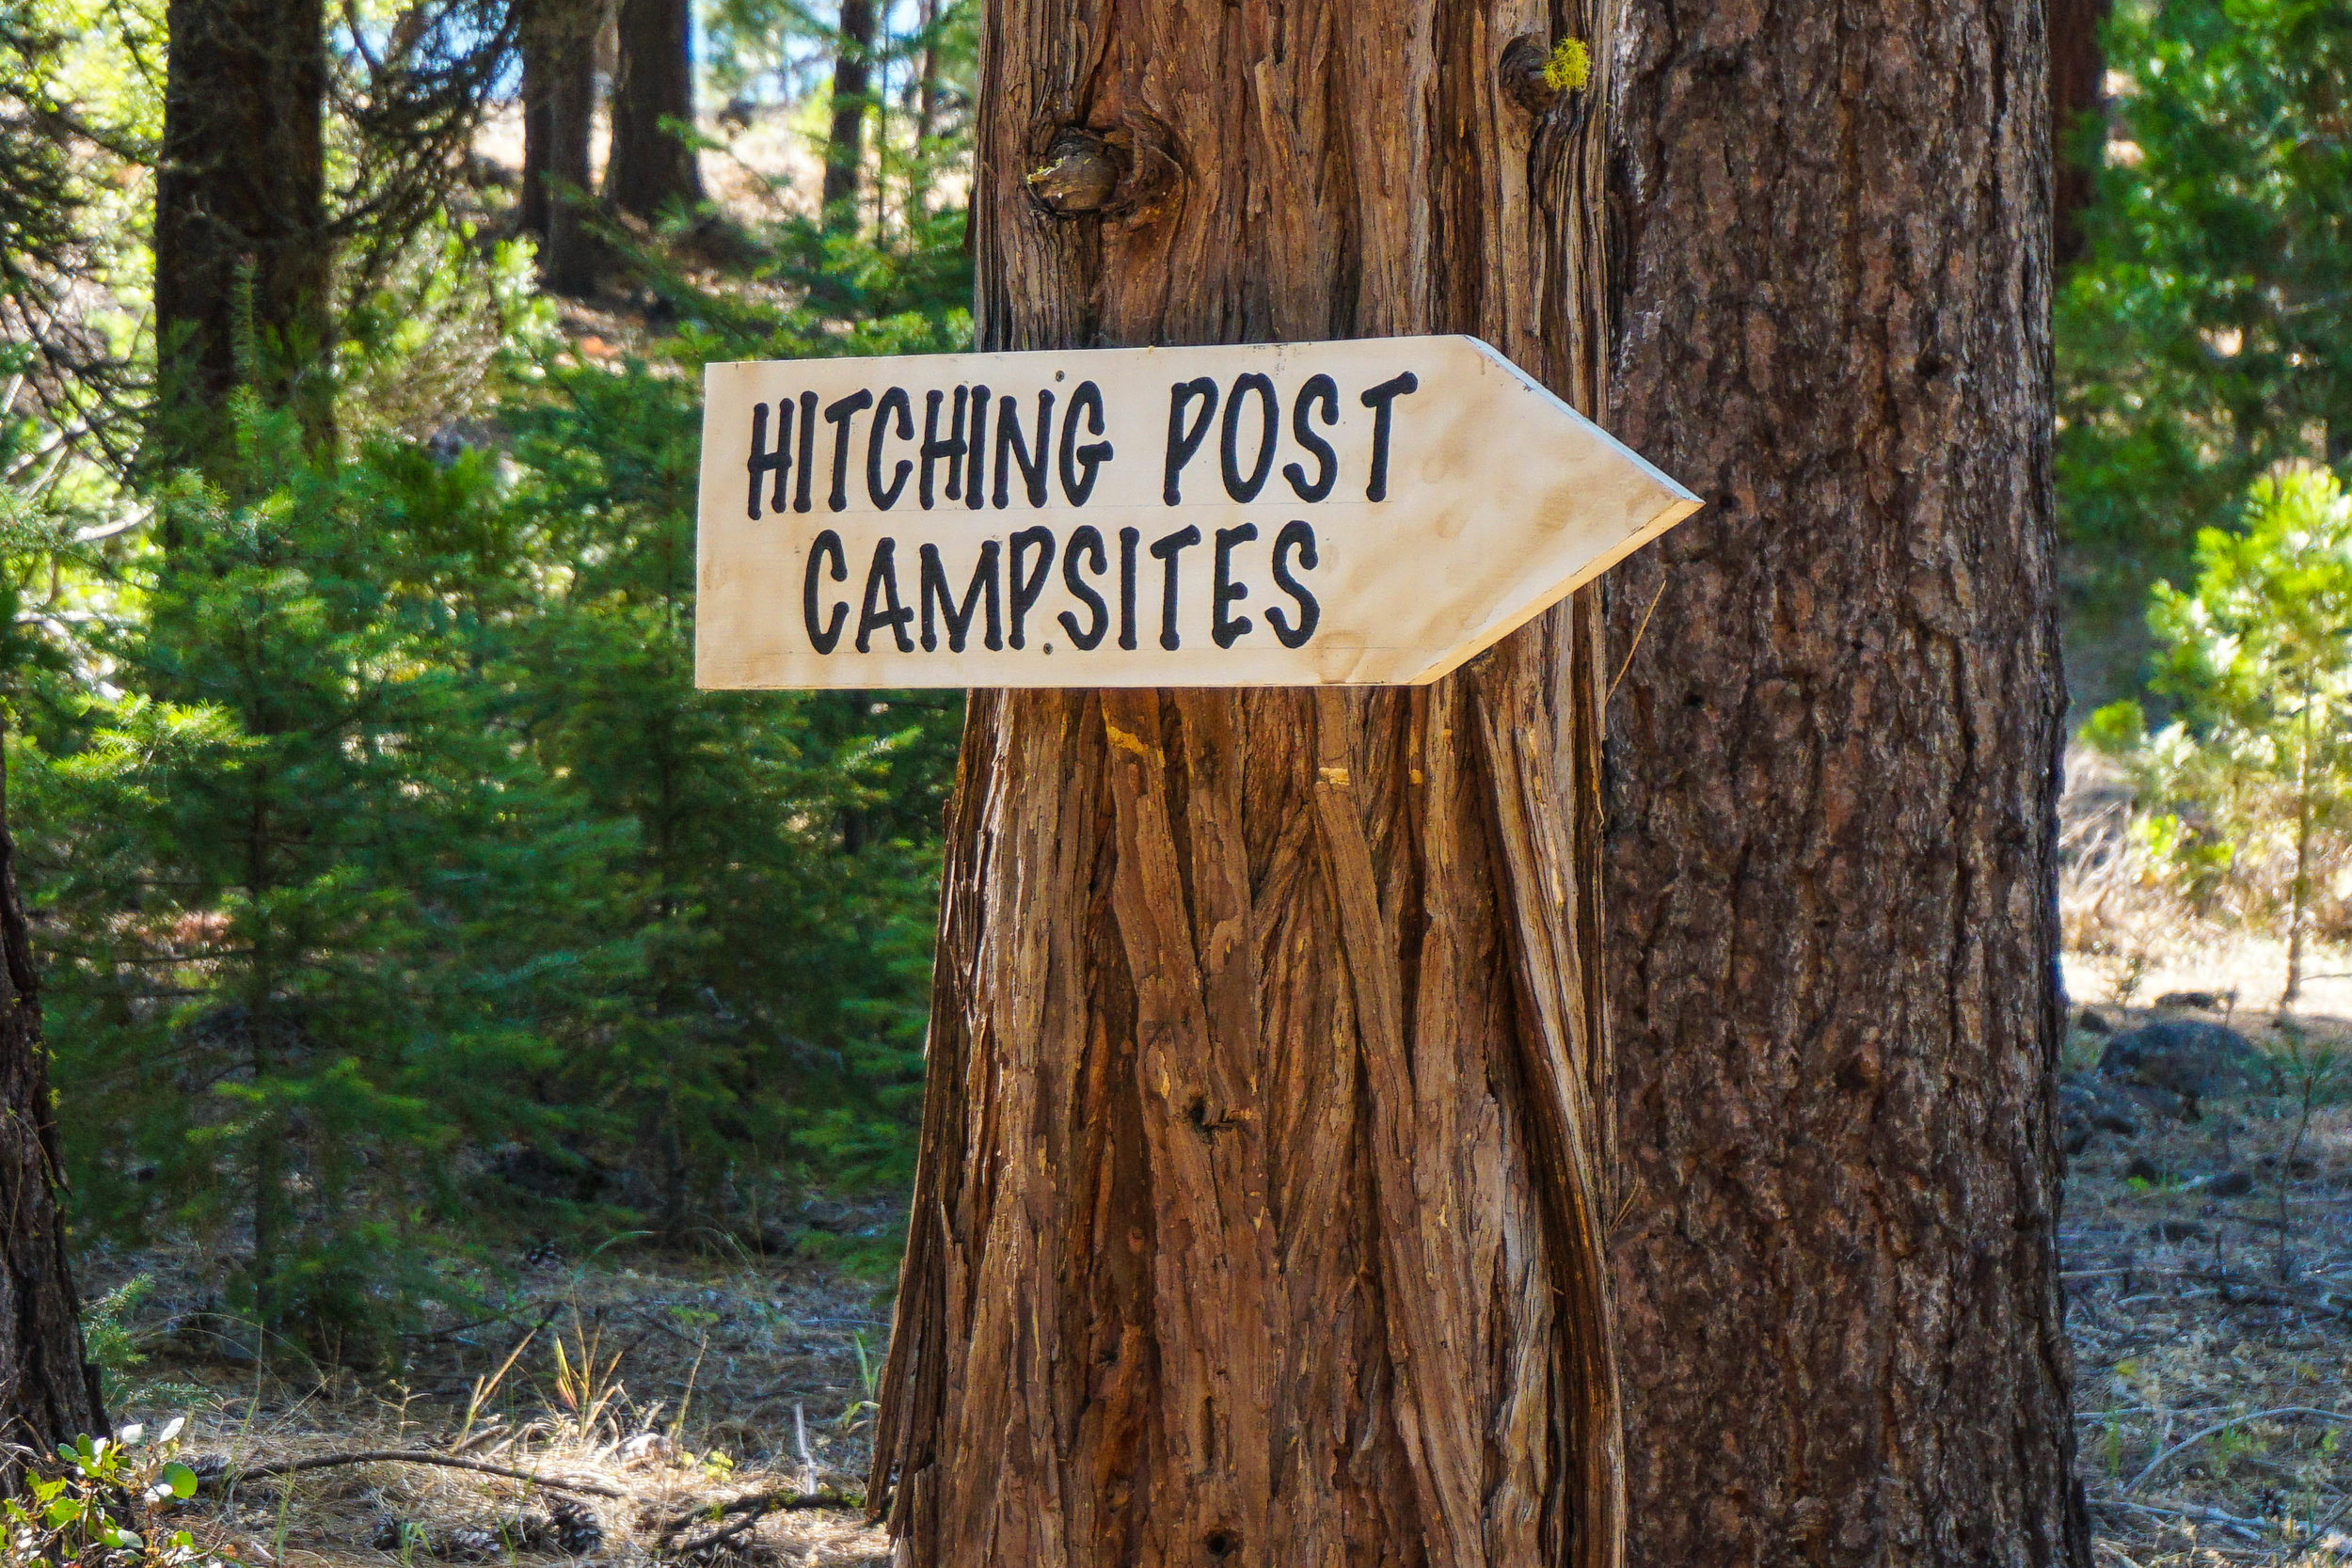 Camping - Hithcing Post.jpg